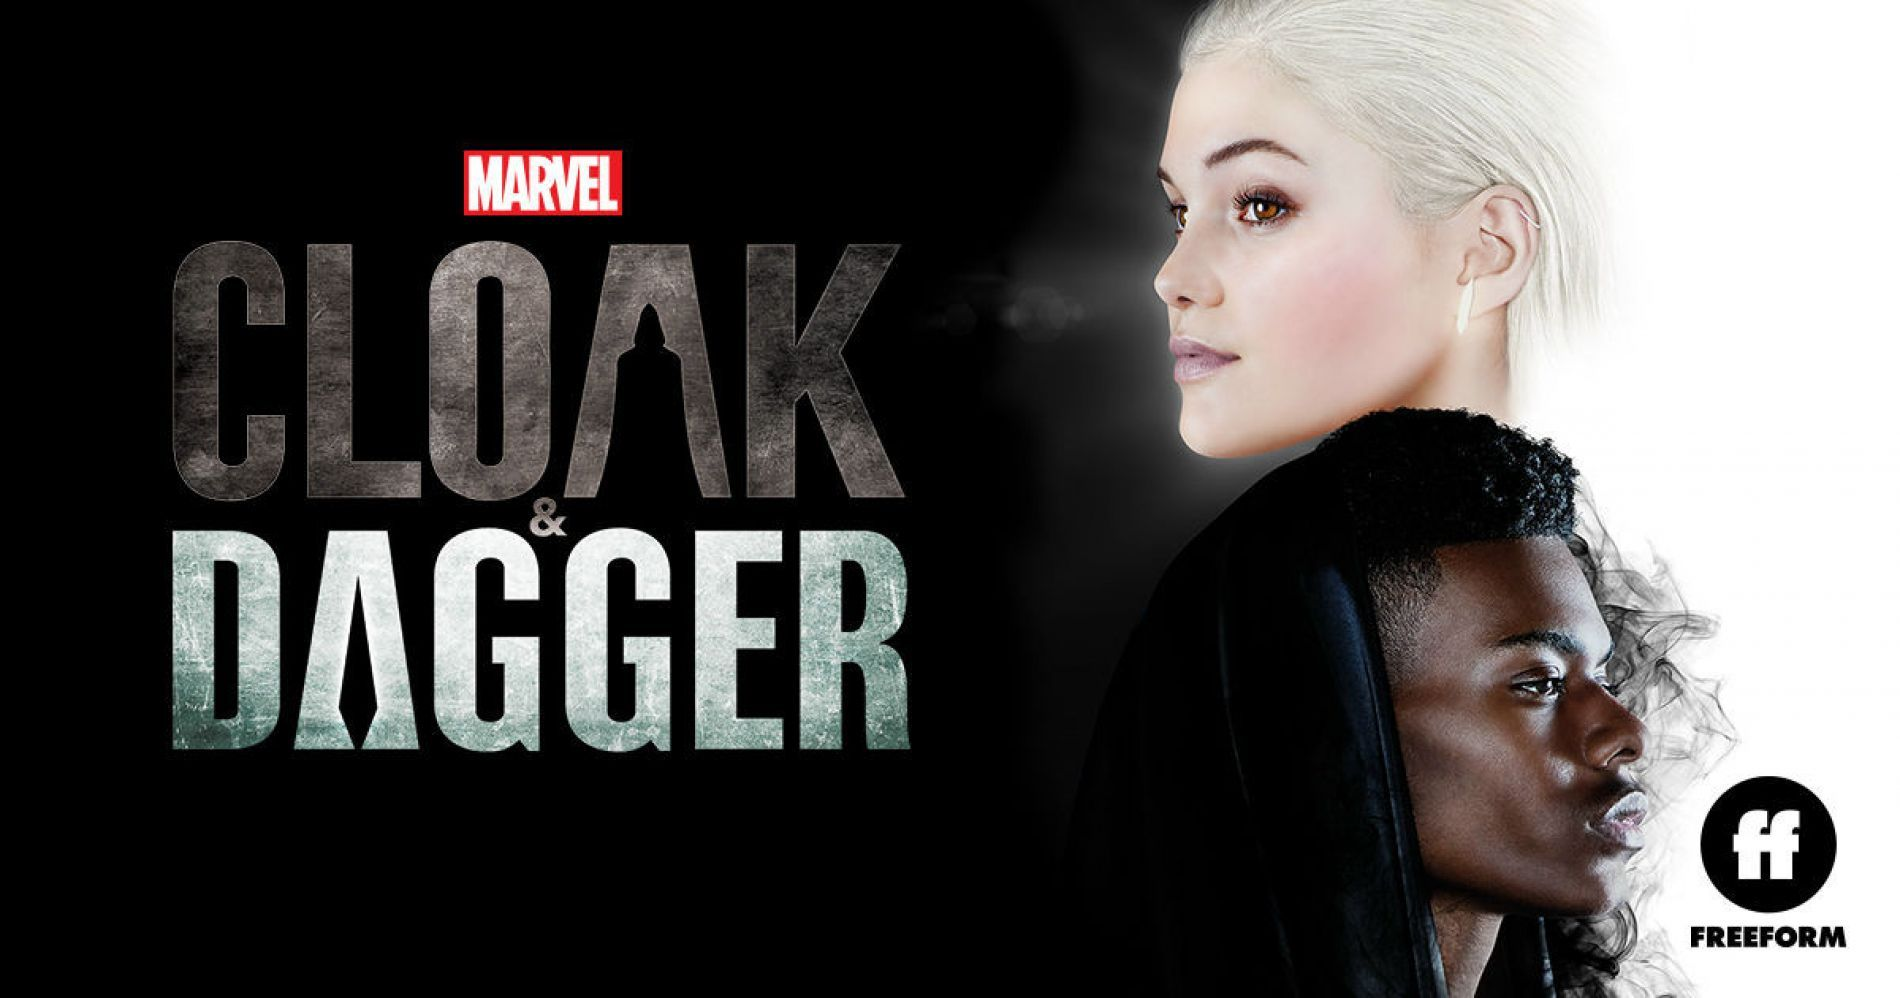 Tujamo & Sidney Samson - Riverside (Reloaded) in Marvel's series 'Cloak & Dagger'!